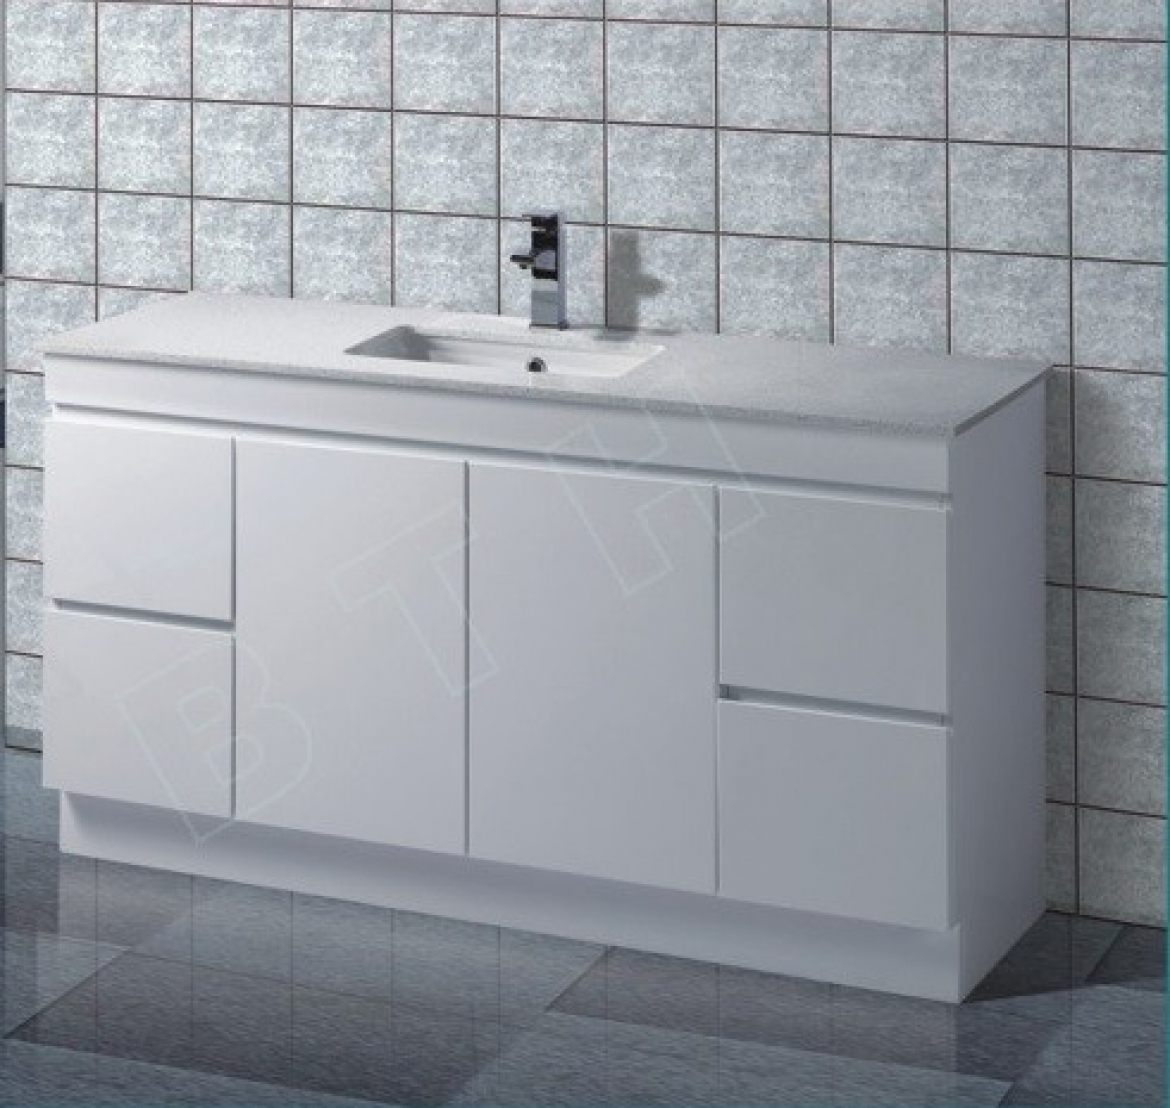 Bathroom stone top vanity [Single Basin-1800 mm]